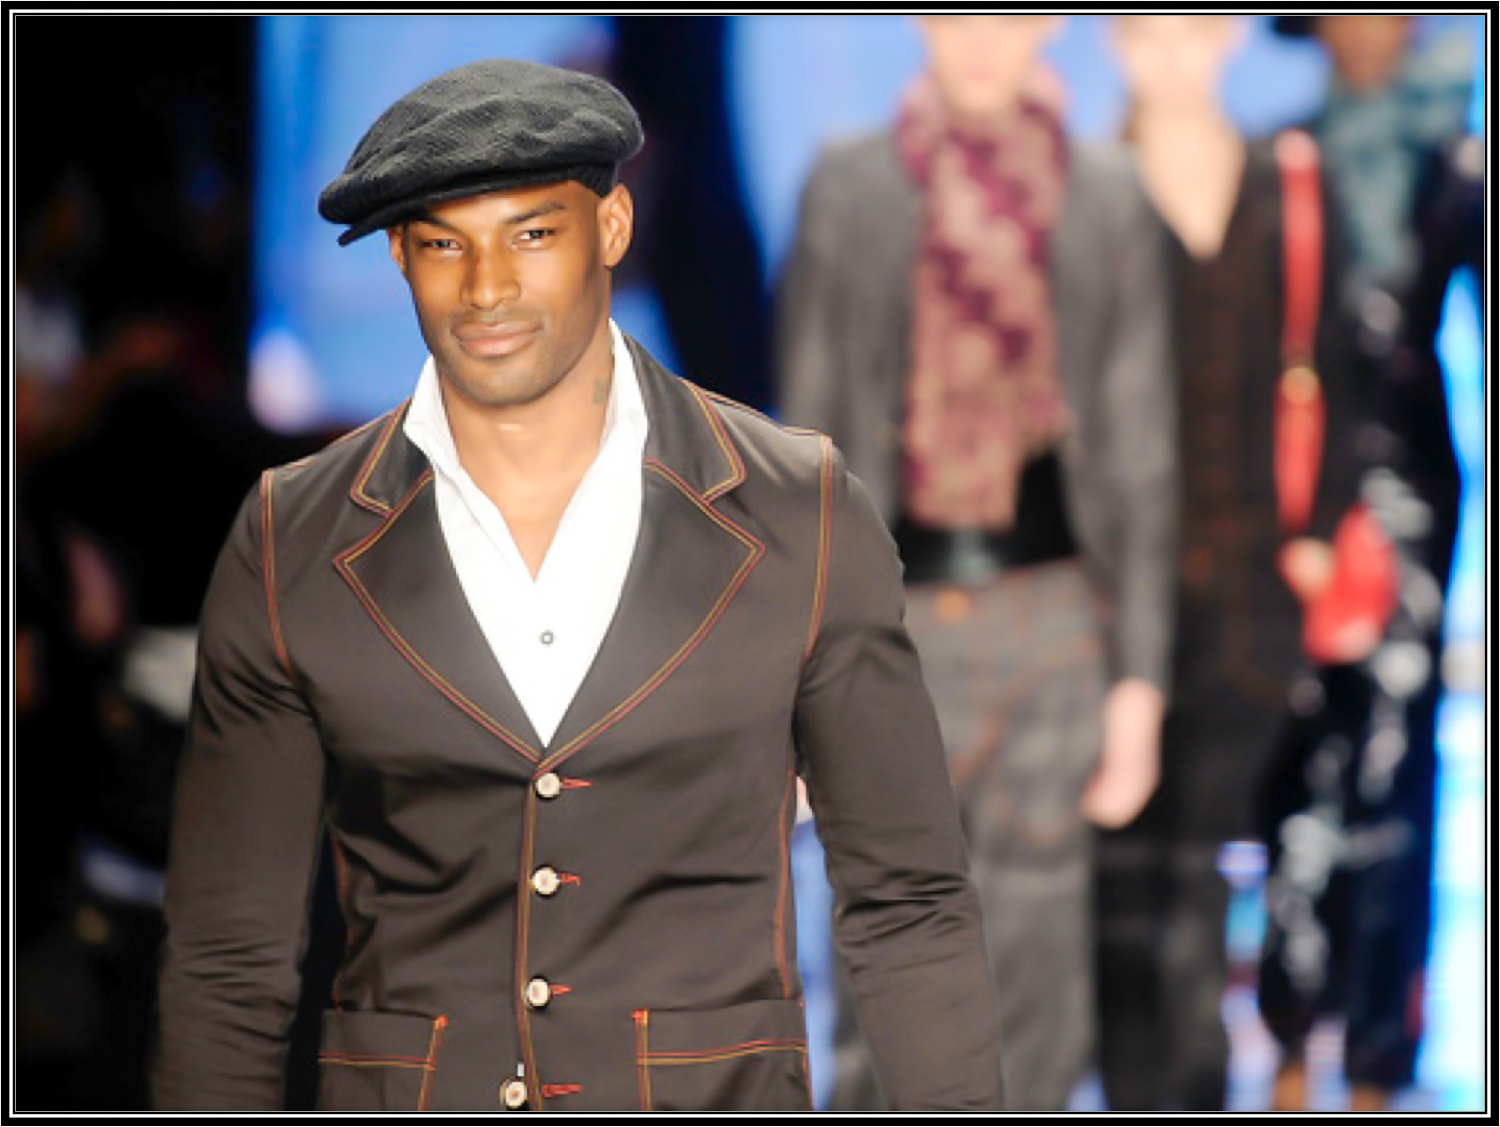 menswear-style-bloggers-melbourne-africa_Myer-Fashions-on-The-Field-2013-menswear_tyson-beckford-melbourne-cup-2013_lavazza-marquee_tyson-beckford-derby-day_tyson-beckford-fashion-style_tyson-beckford-editorials_tyson-beckford-runway_top-male-models-4